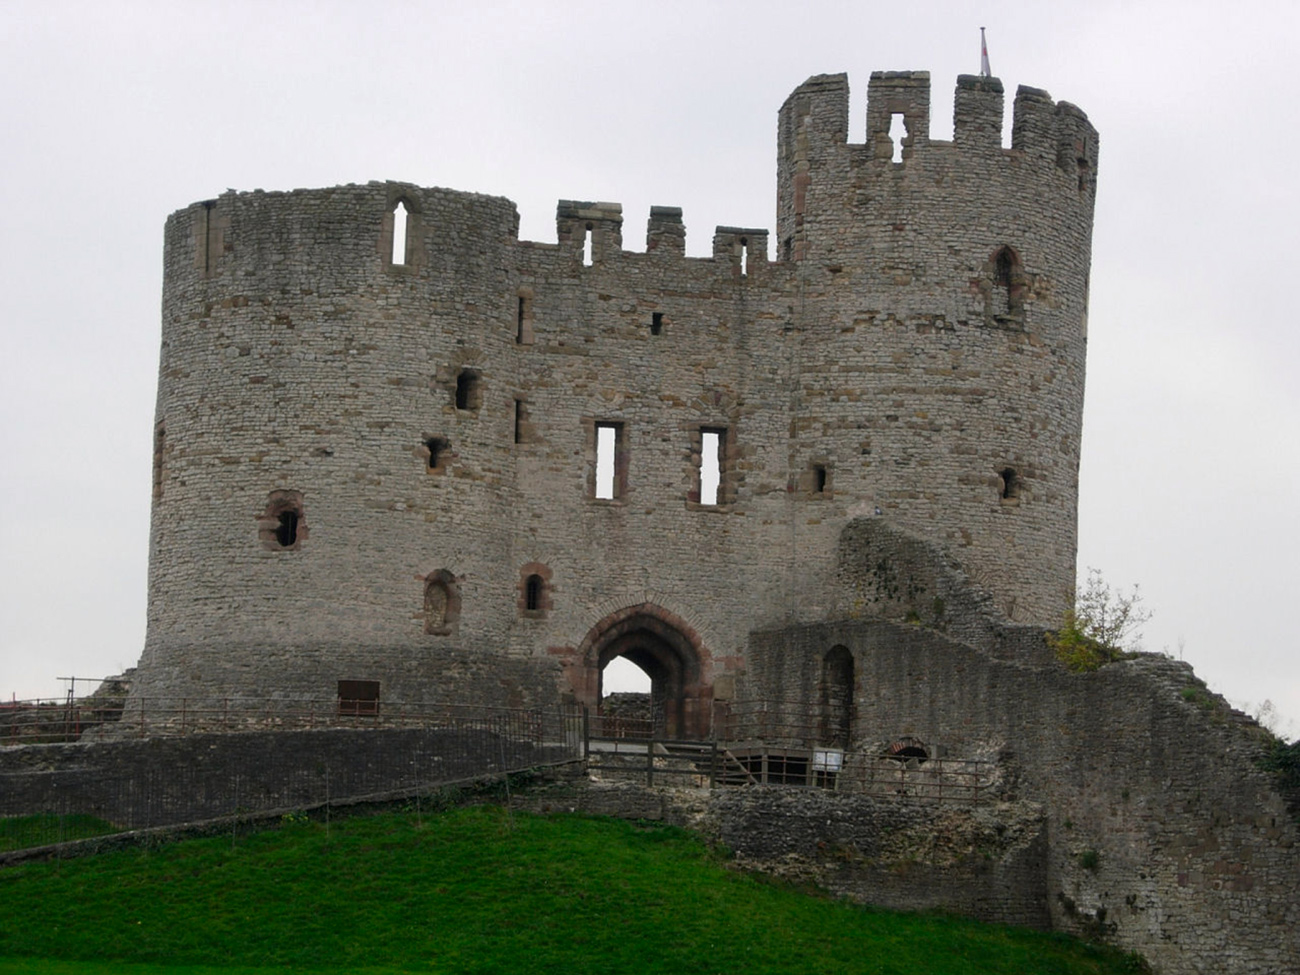 Small, stone castle stands on a hill.